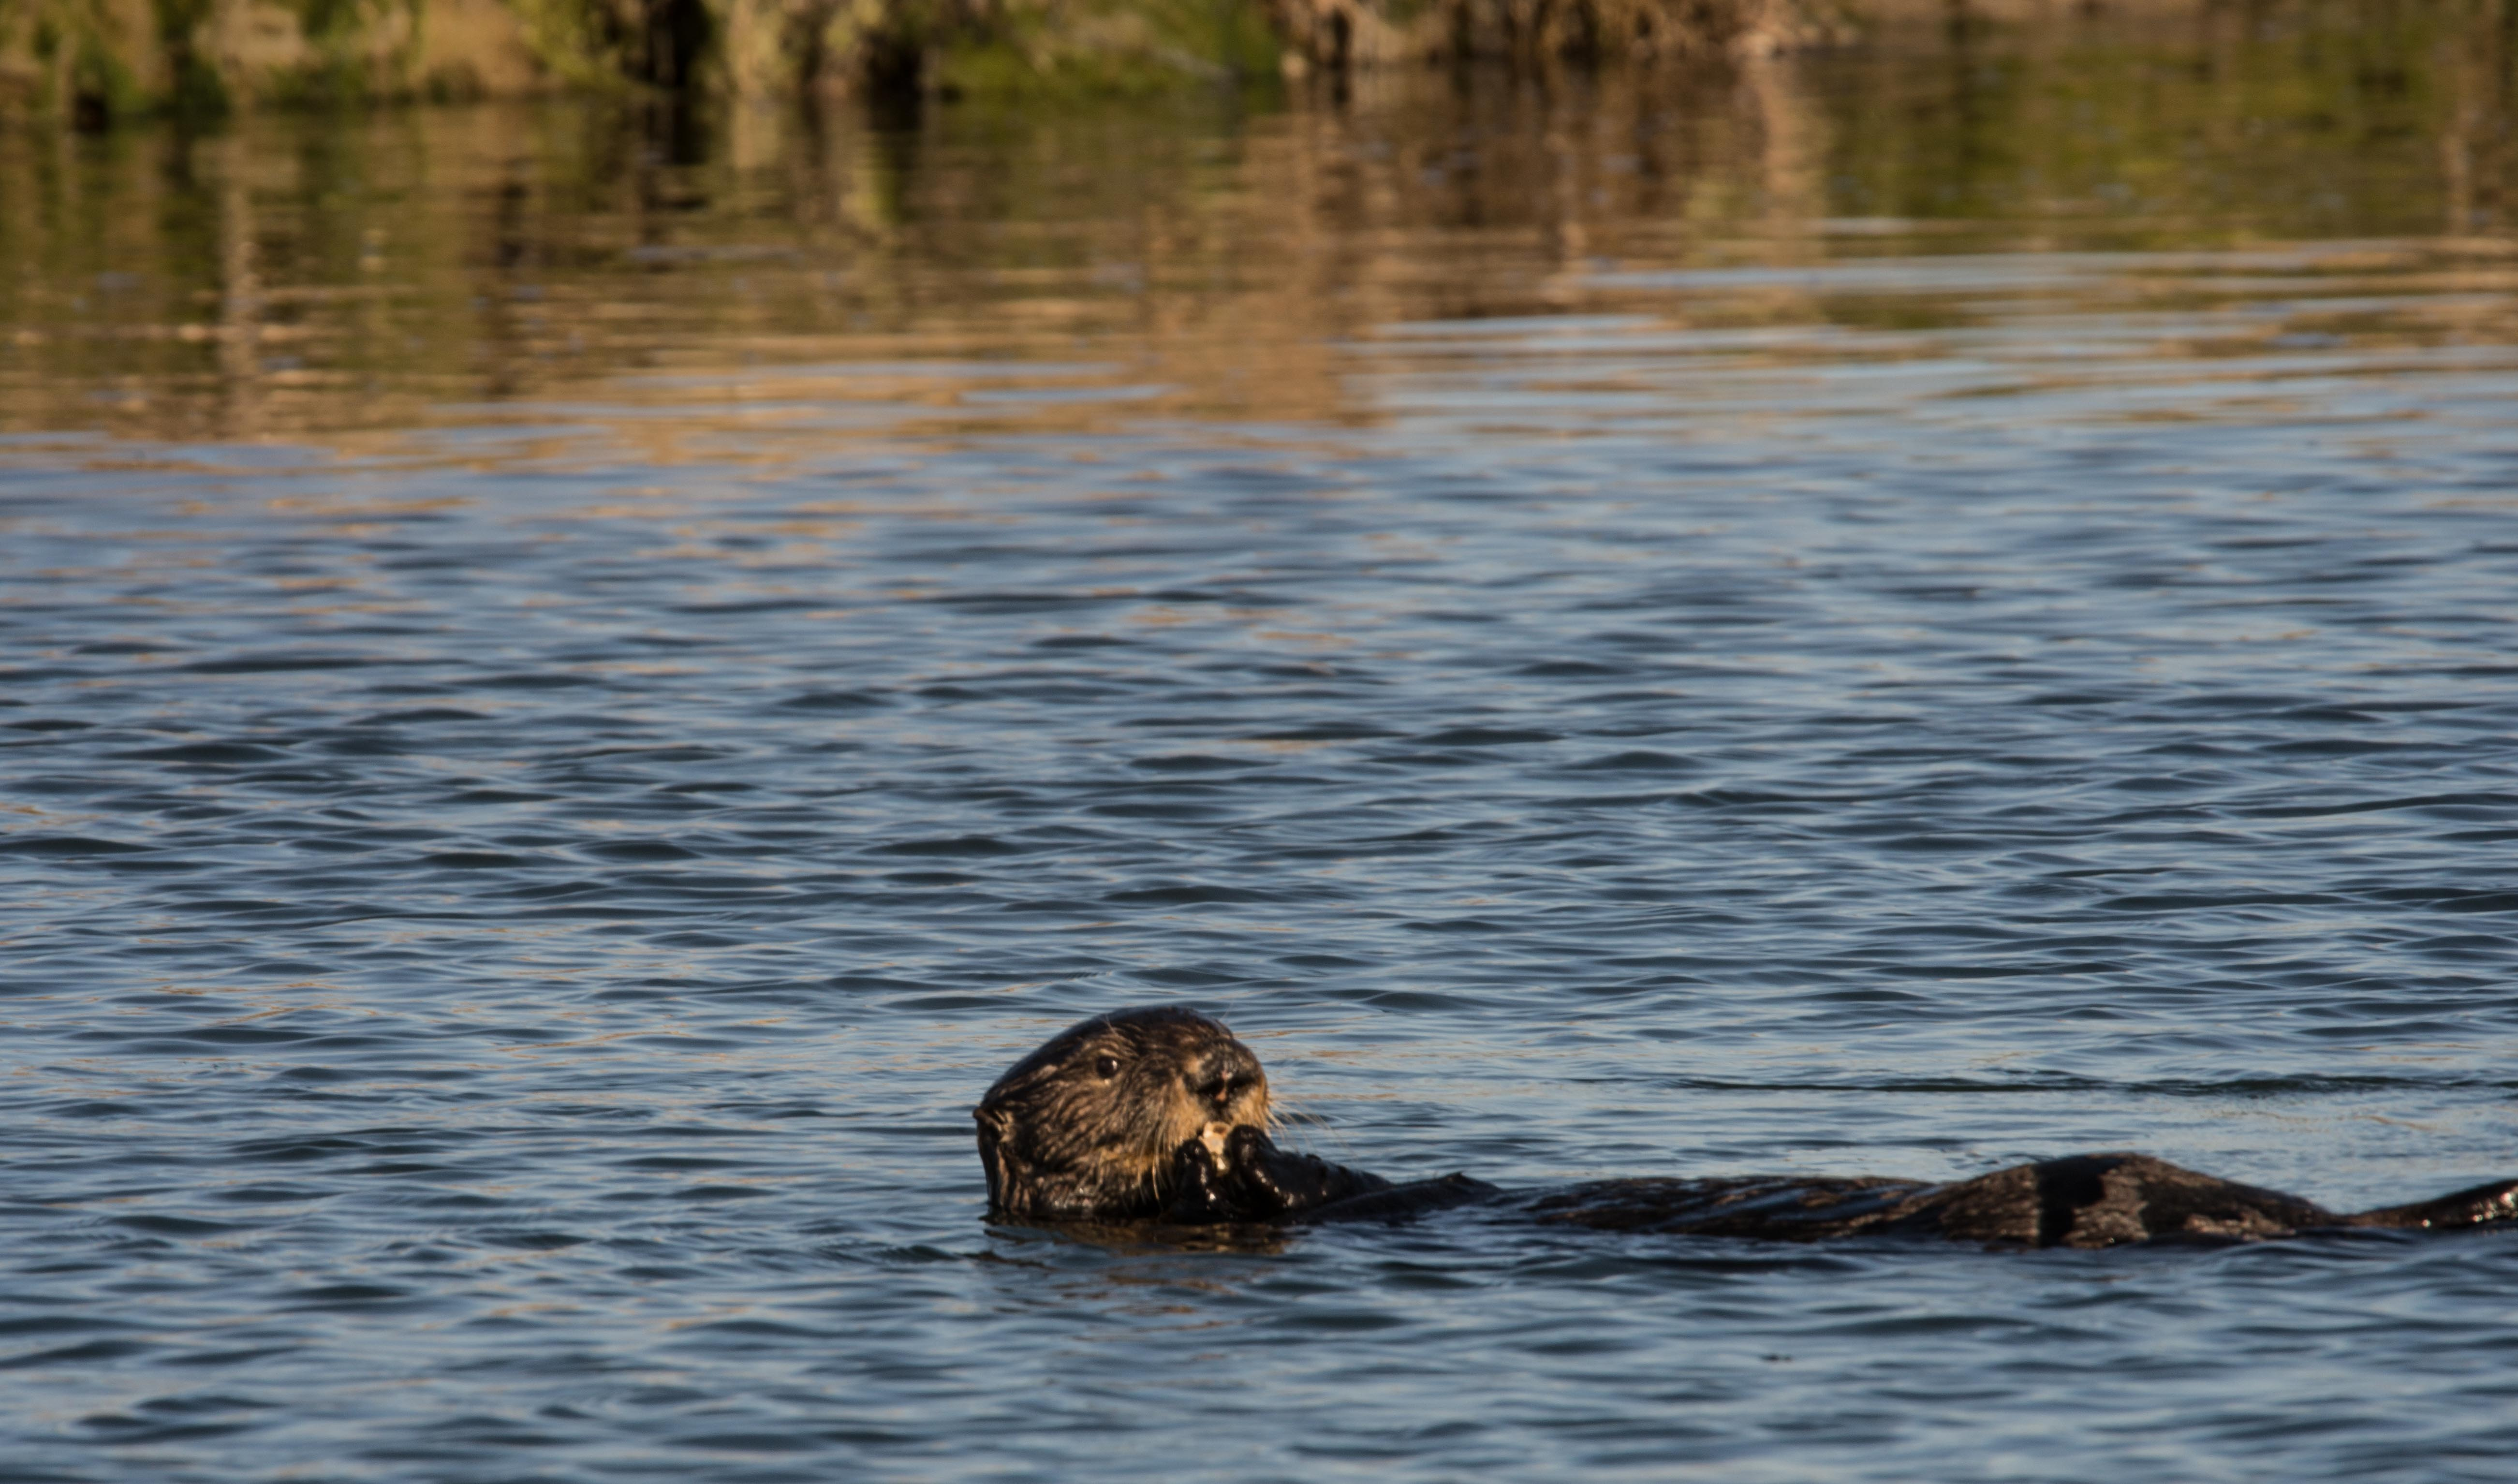 Sea Otter with Prey, Terry and David Schuller